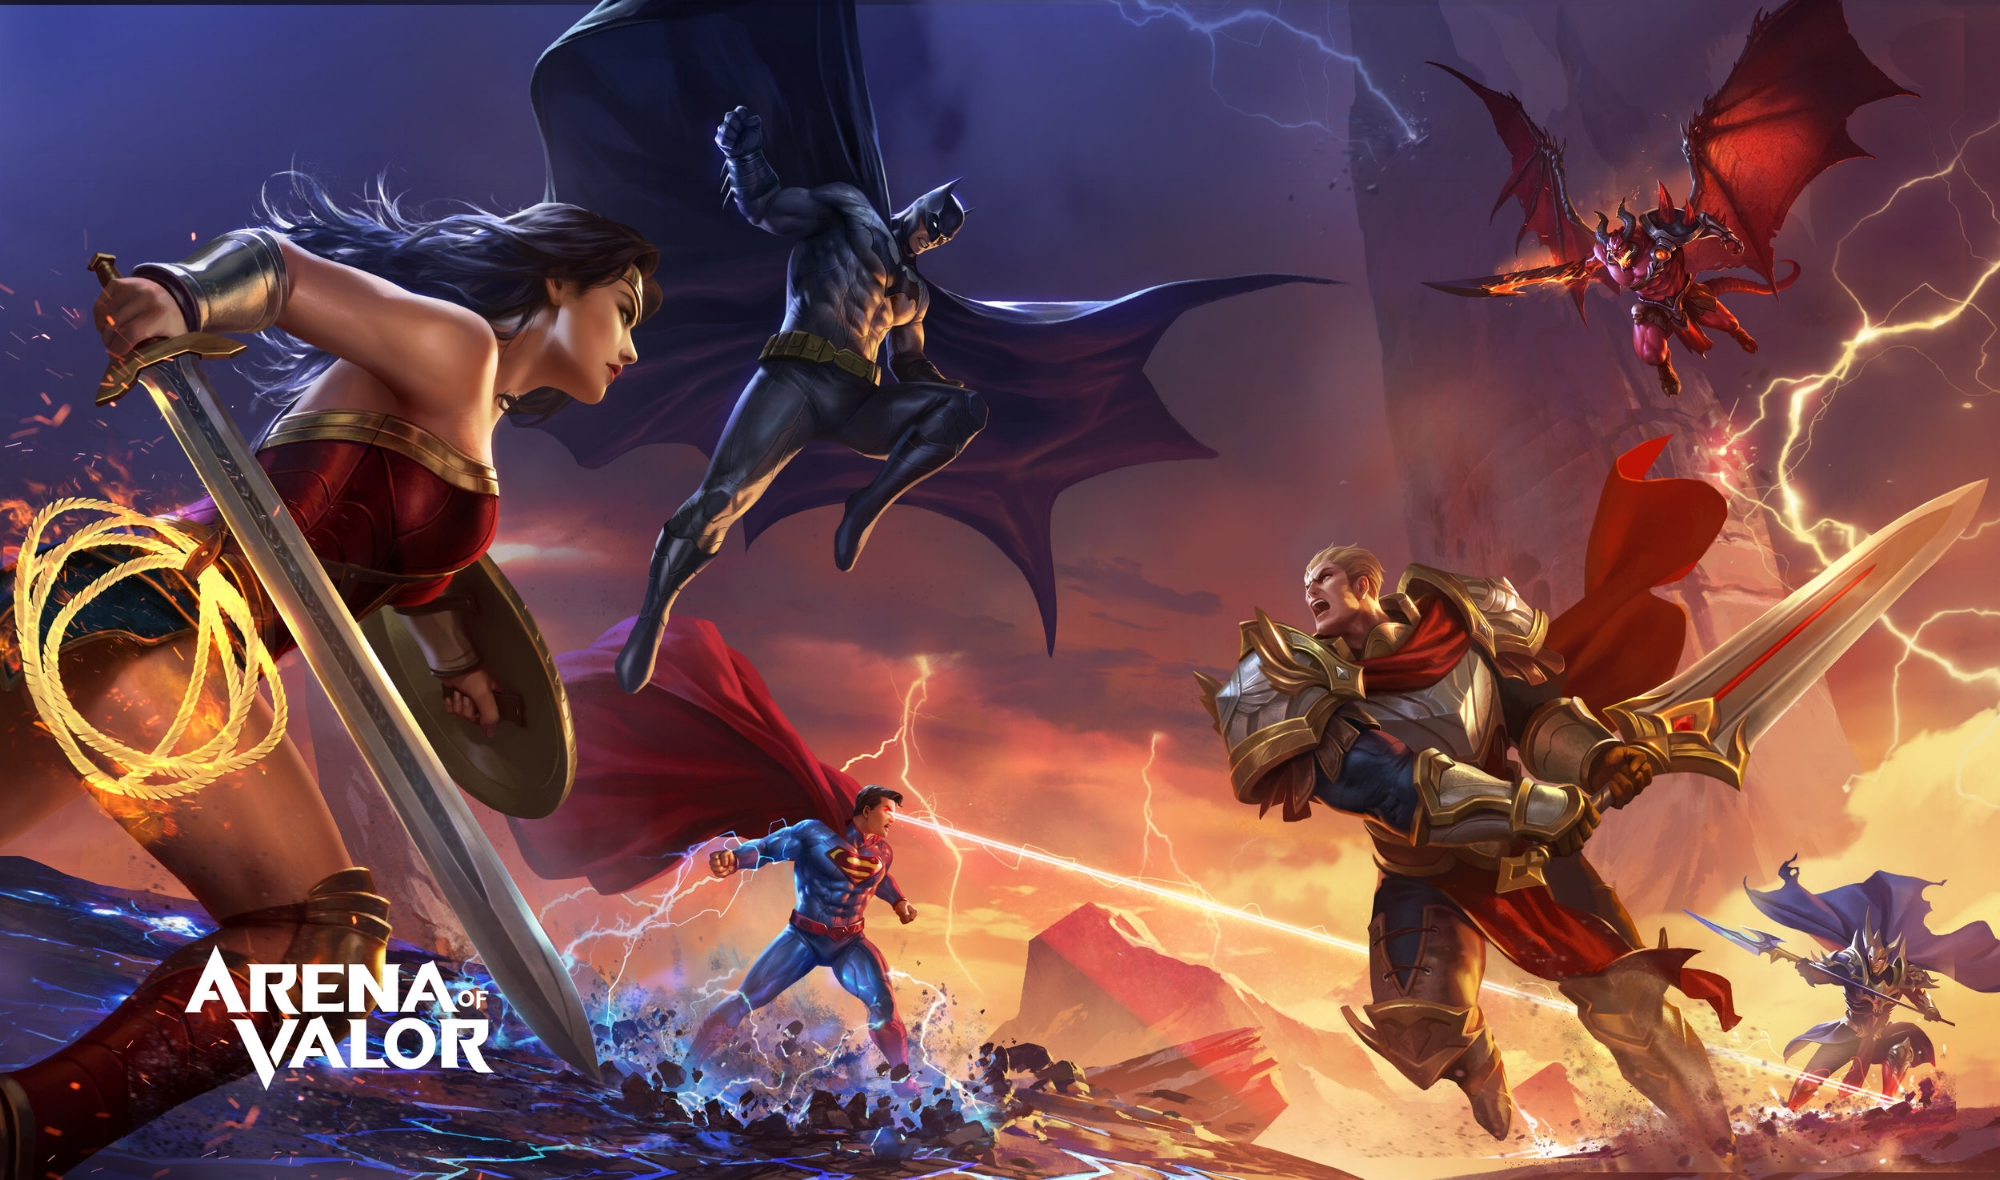 Splash screen CAH did for Tencent's Arena of Valor